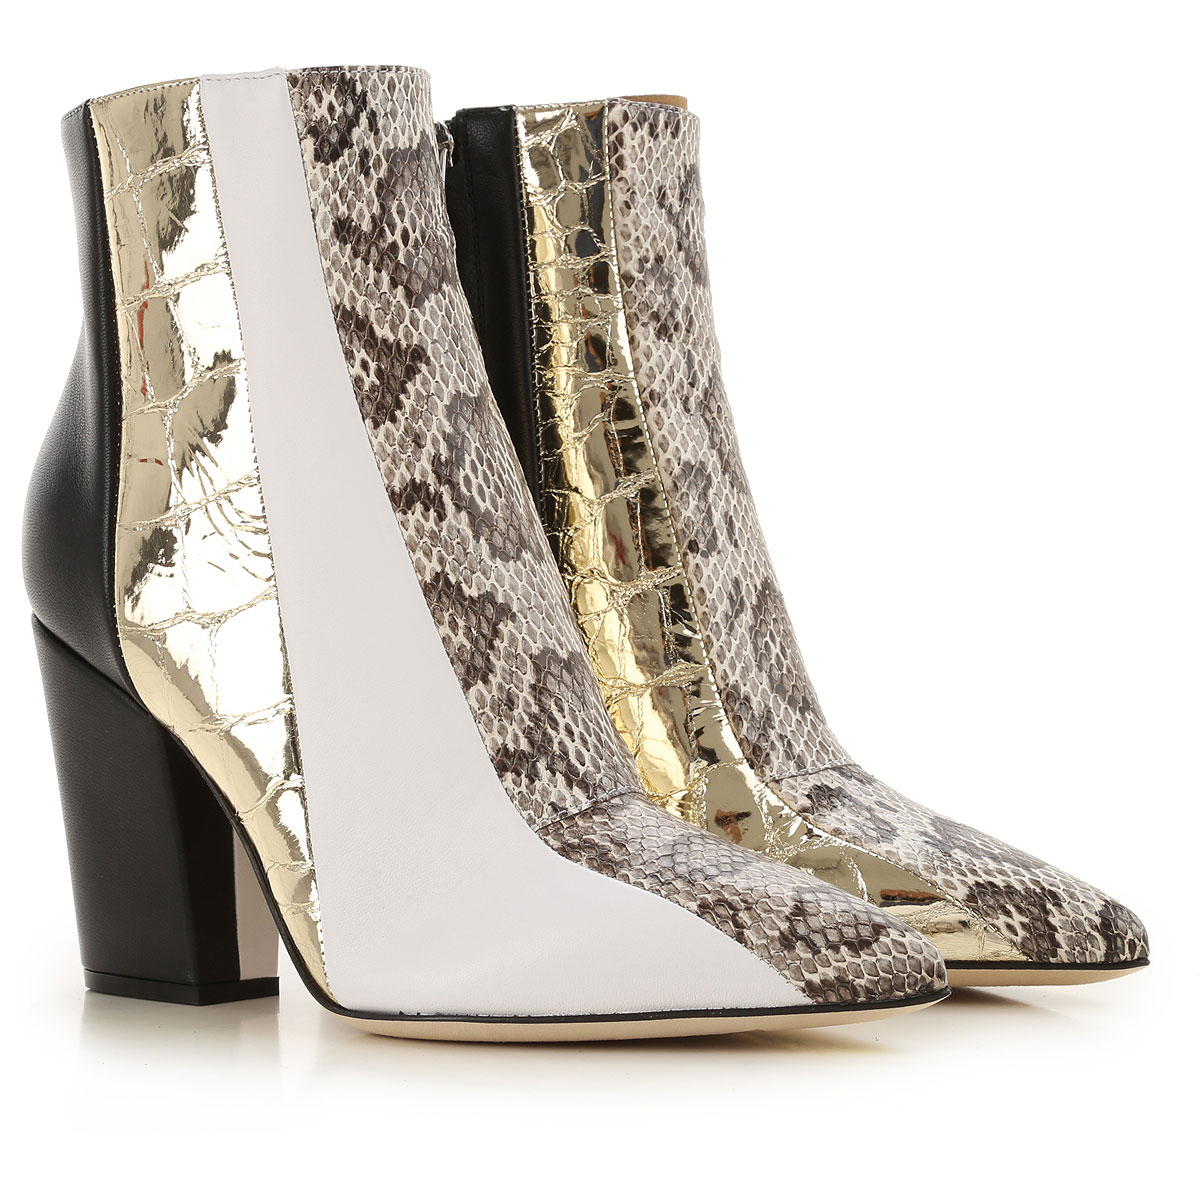 Sergio Rossi Boots for Women, Booties On Sale, Platinum, Leather, 2019, 6 7 8 9